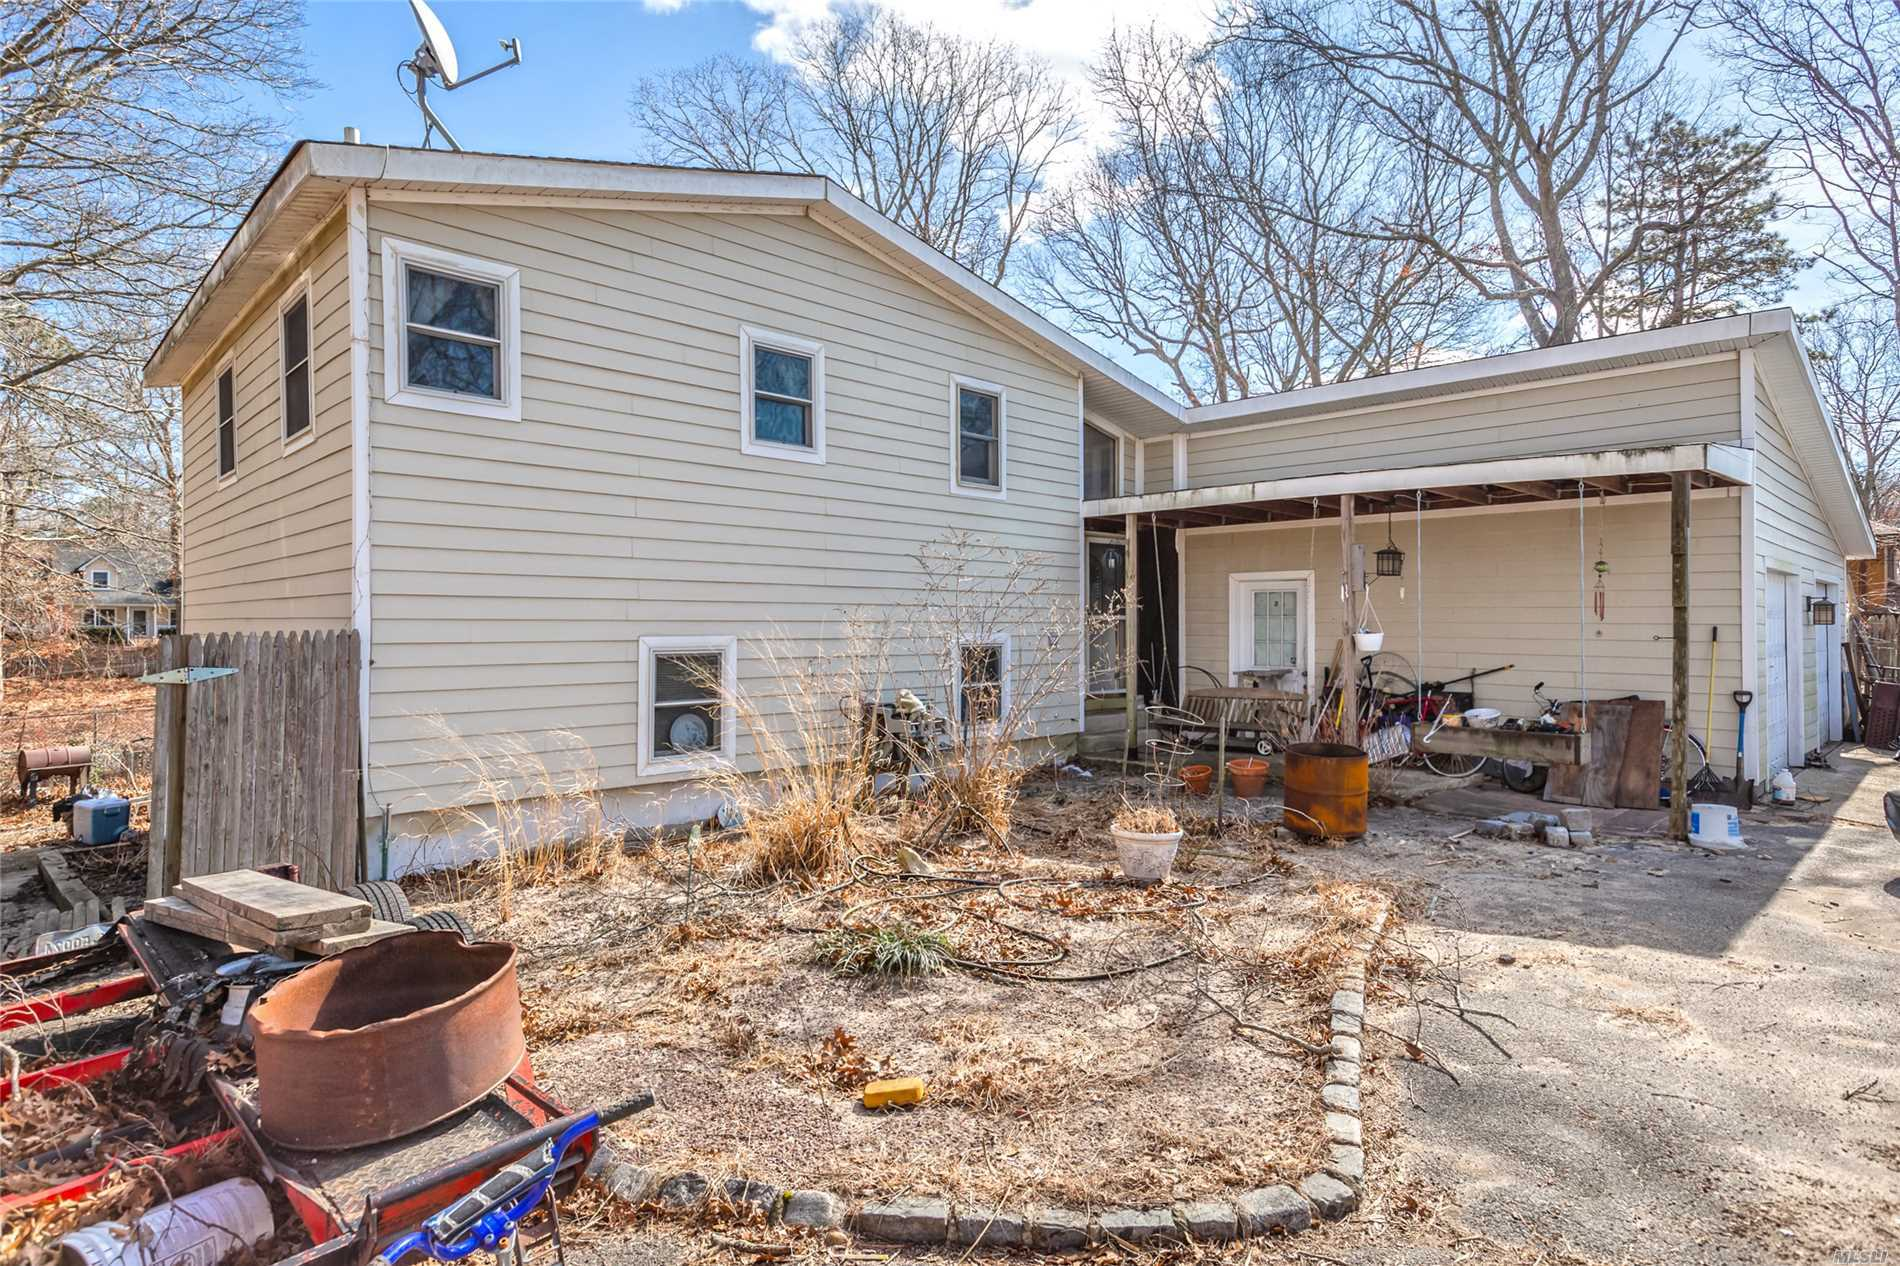 2, 116 Sqft 3 Bed, 2 Bath Handyman Featuring Entry Foyer, Eik, Living Room, Dining Room, Family Room, Hw Floors, Fireplace, Master Suite W/Wic & Master Bath, Upgraded Bathrooms,  Leaking Skylights, Roof Done Approx 2009, Top-Of-The-Line Siding Less Than 10 Yrs Young, Part Basement, 2 Car Garage, Large .69 Acre Property, L-Shaped Pool Needs Work, Cash Or Renovation Loan Offers Only, Being Sold As-Is...Bring Your Toolbelt And Make This Home Beautiful Again!